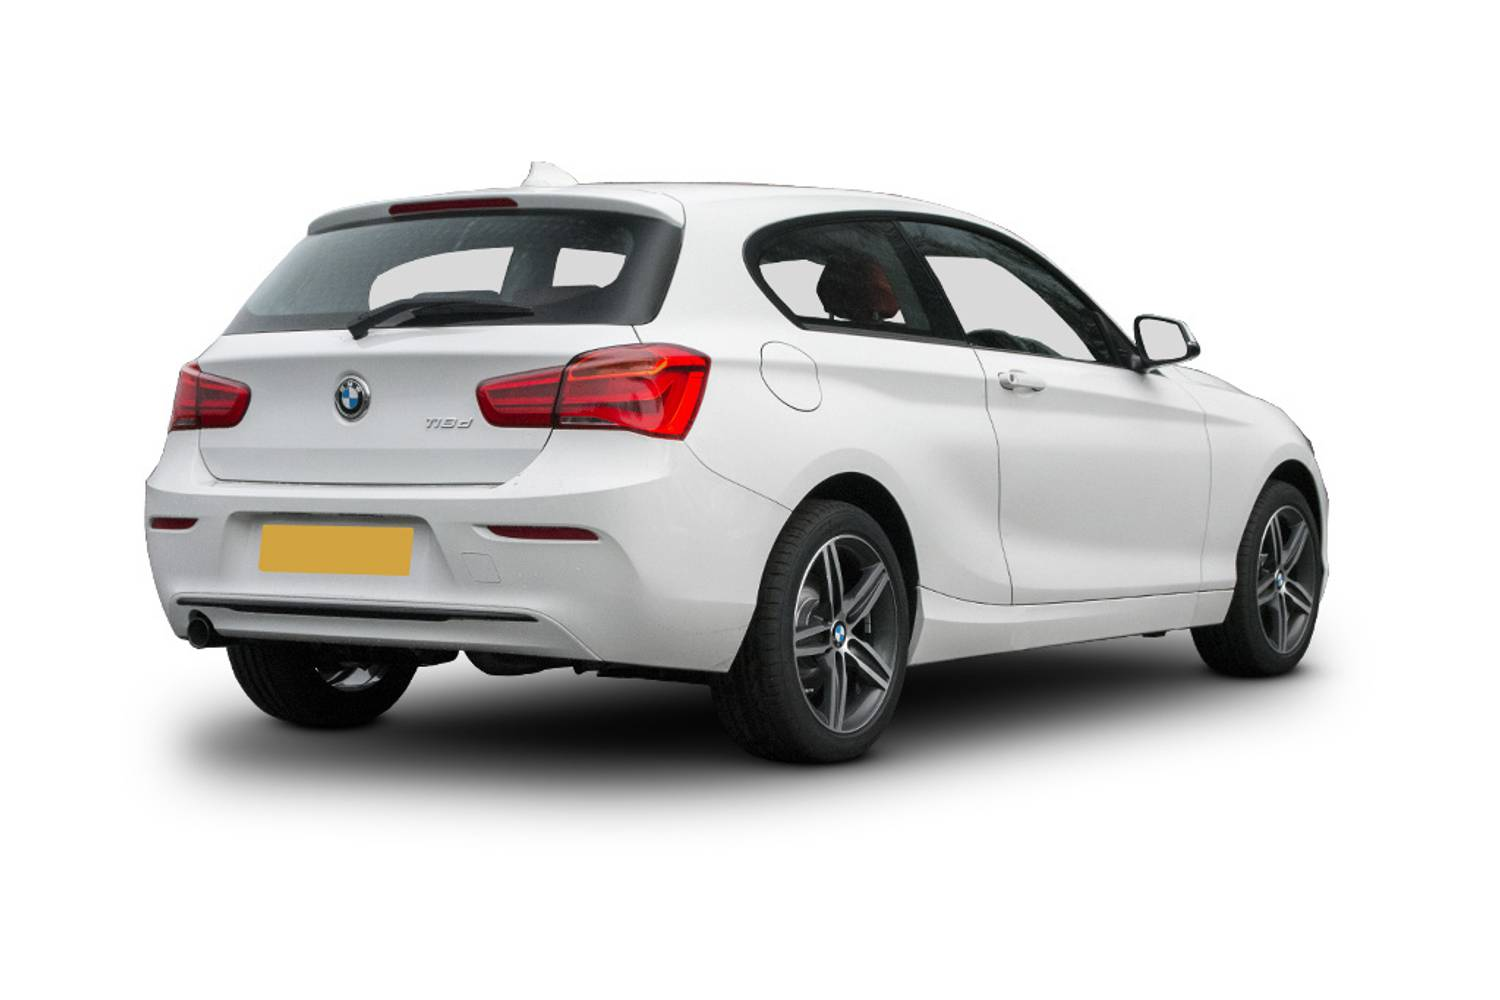 BMW 1 Series Hatchback 3dr Rear Three Quarter